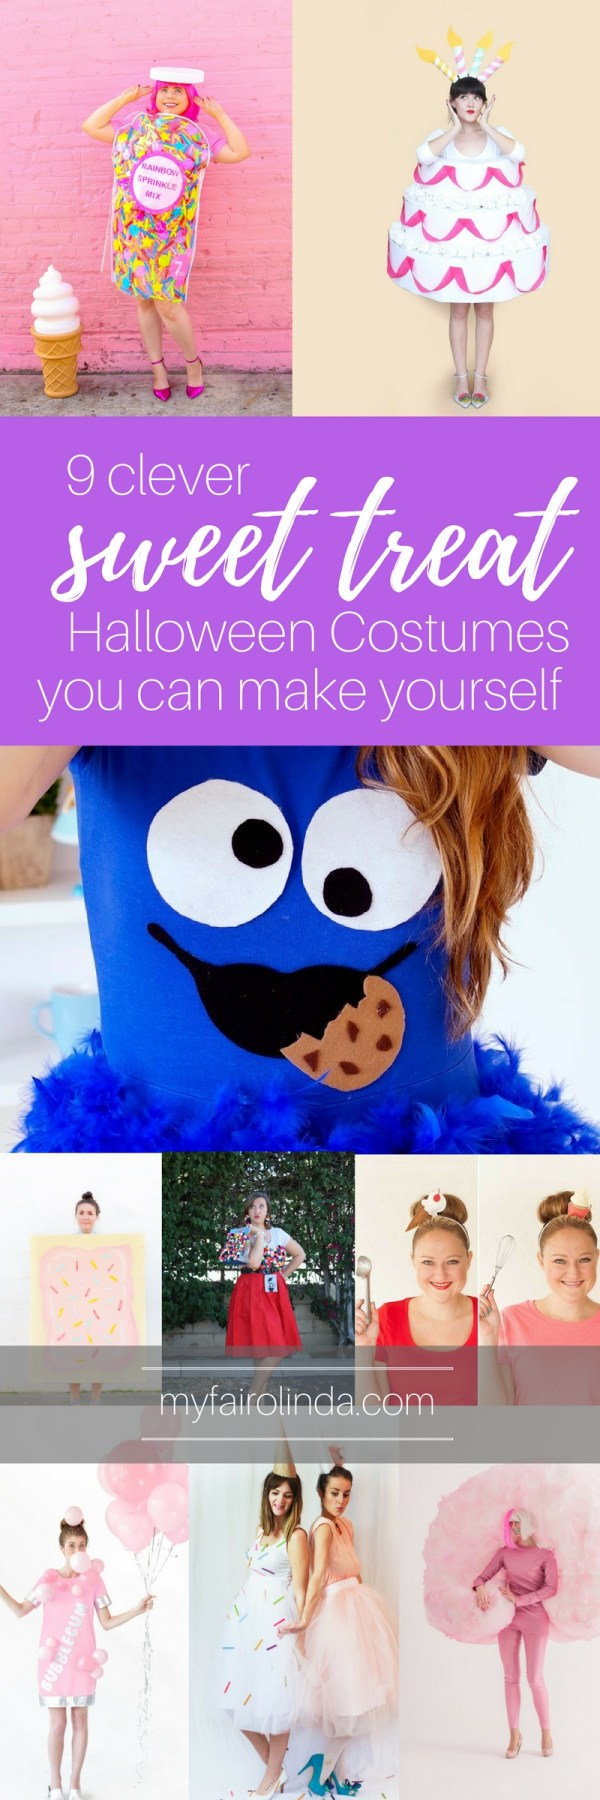 9 Clever Sweet Treat Halloween Costumes You Can Make Yourself